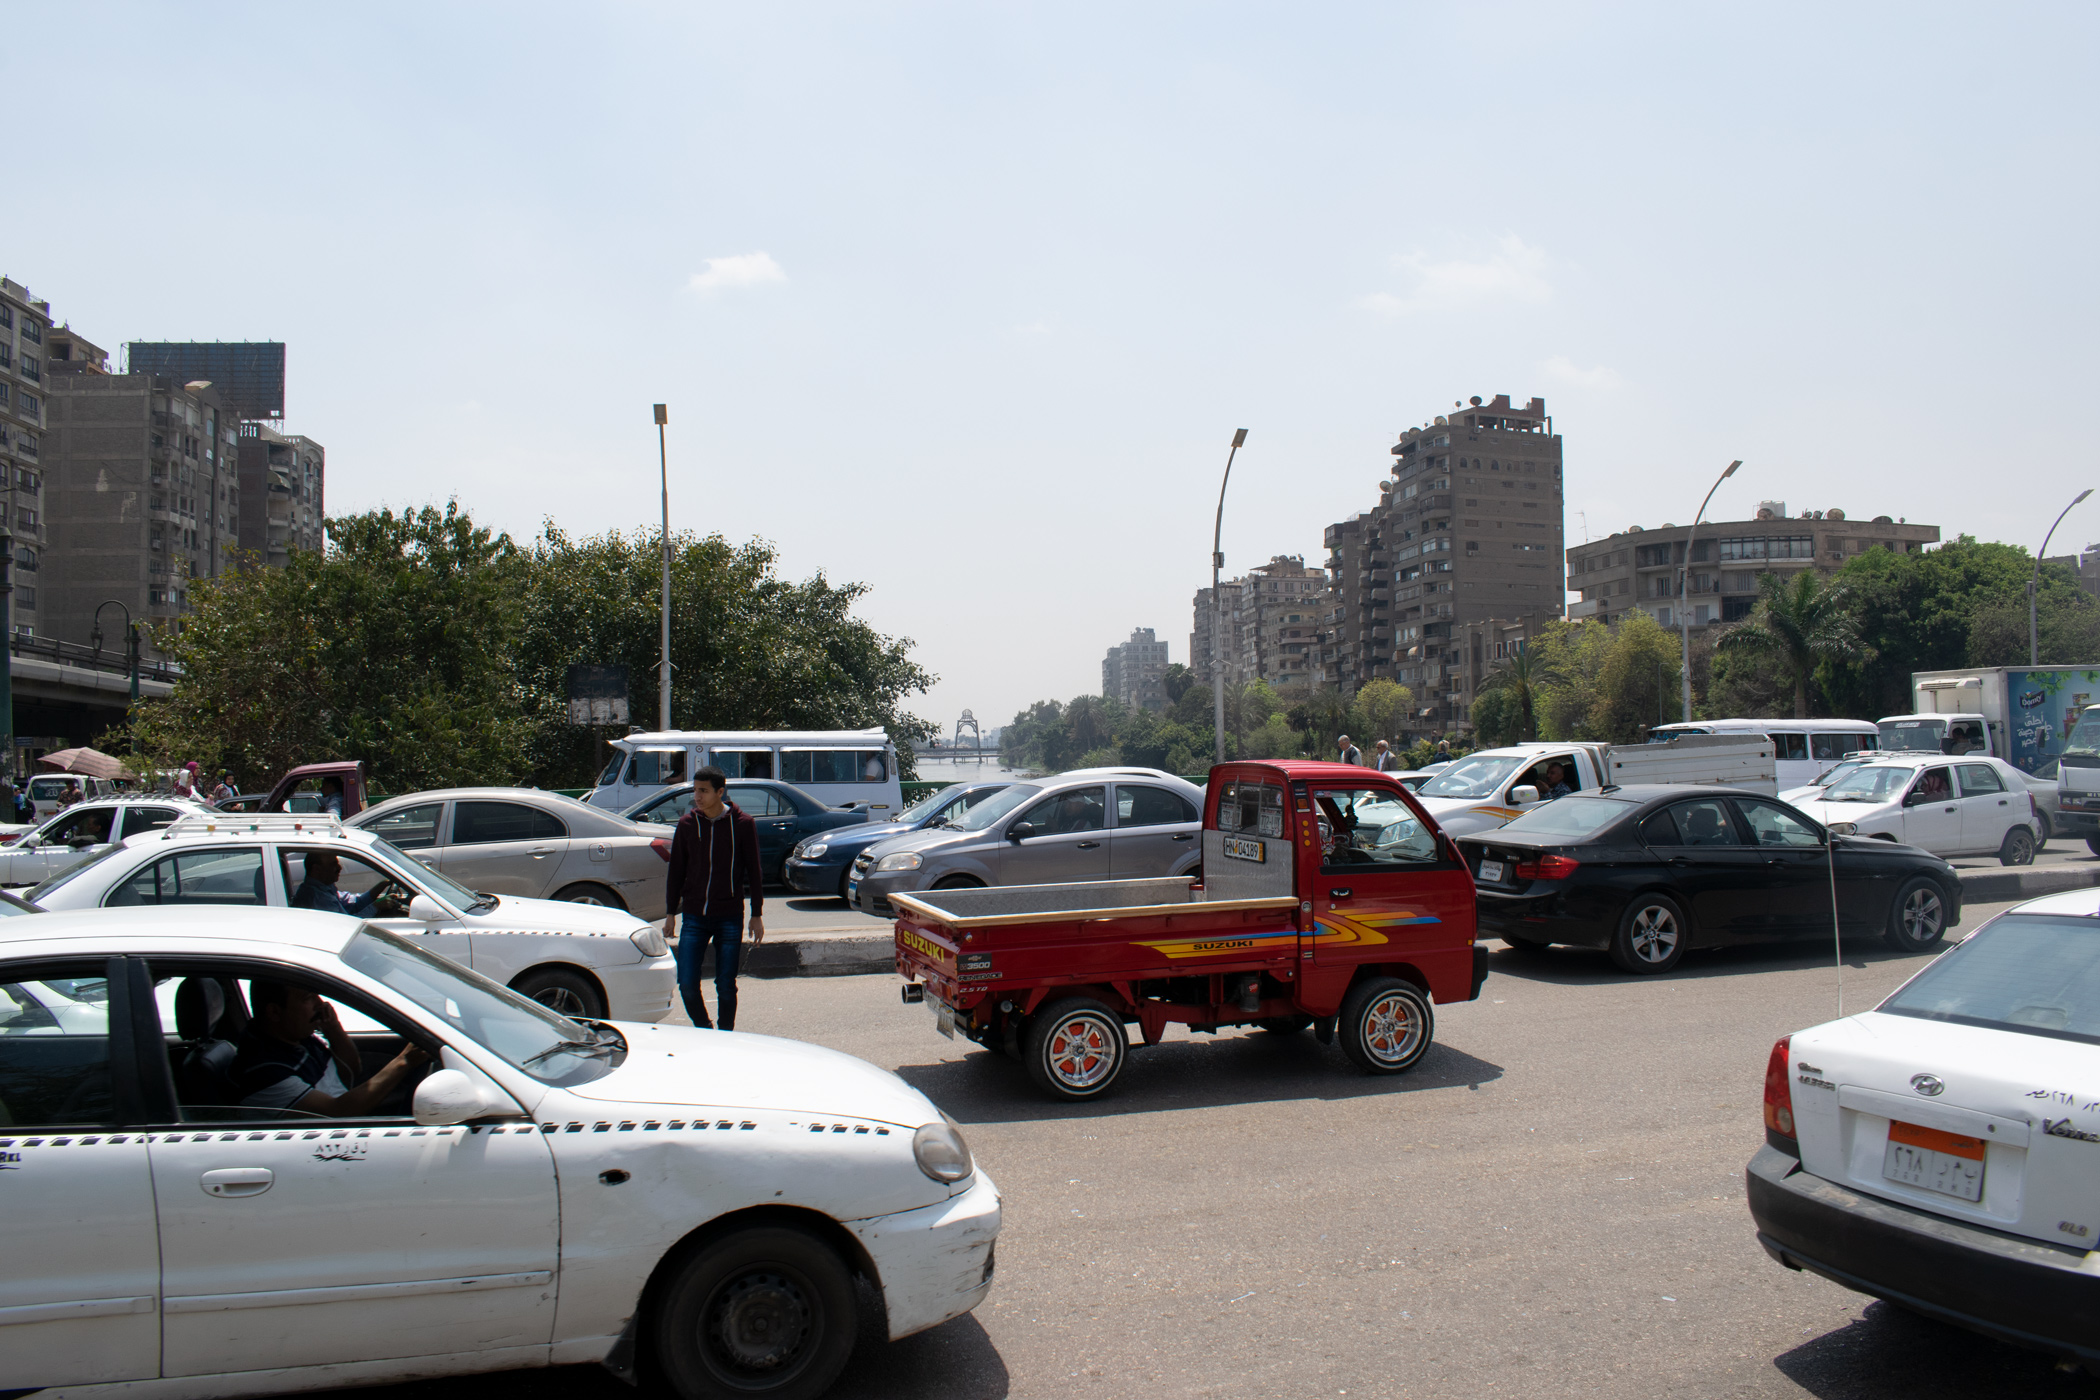 Often the scene in Cairo, with pedestrians having to weave in and out of non-stop traffic to cross the road.